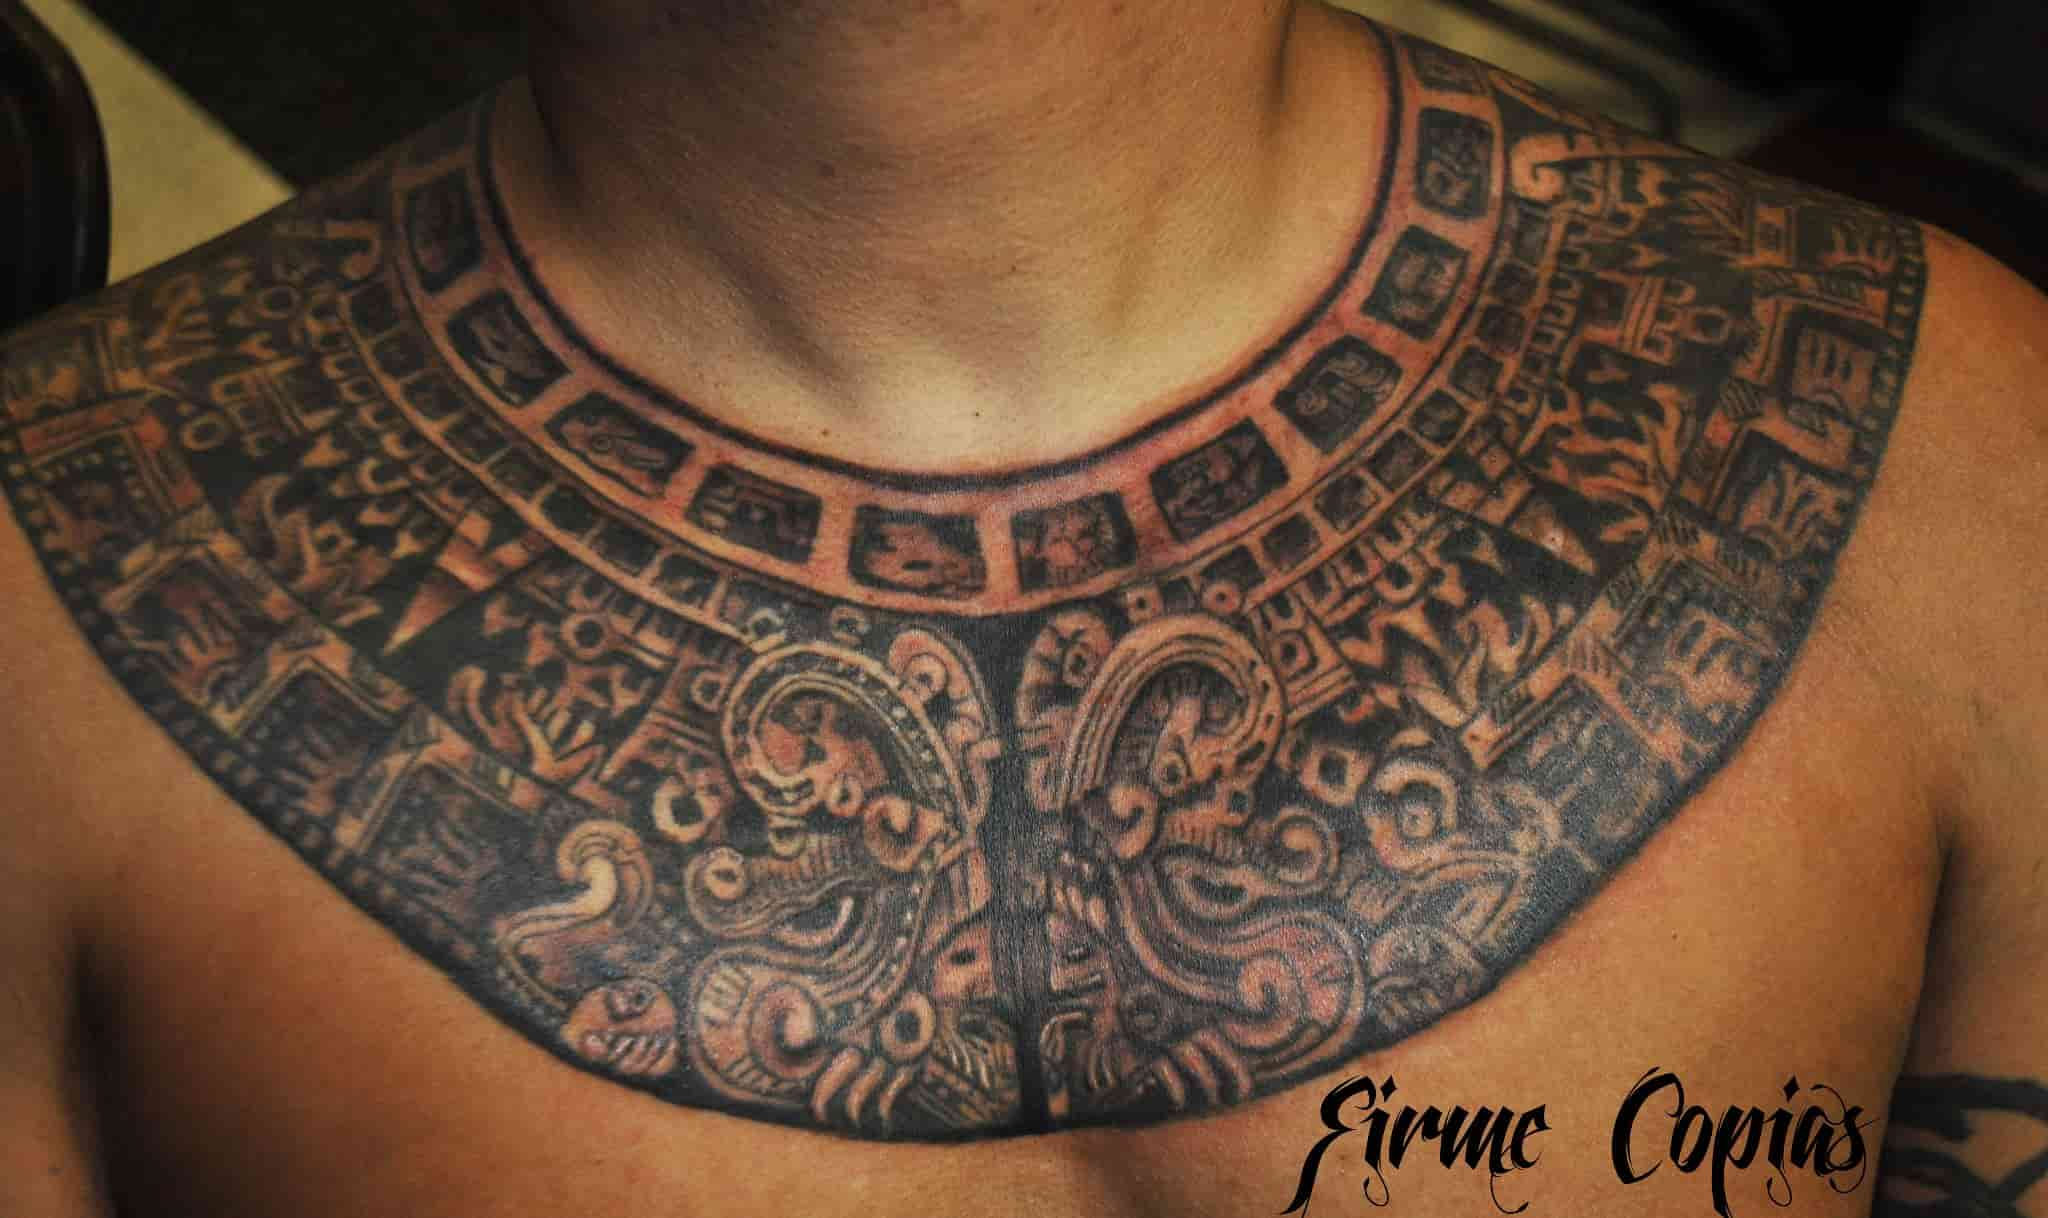 Black and Gray Tattoo - Firme Copias